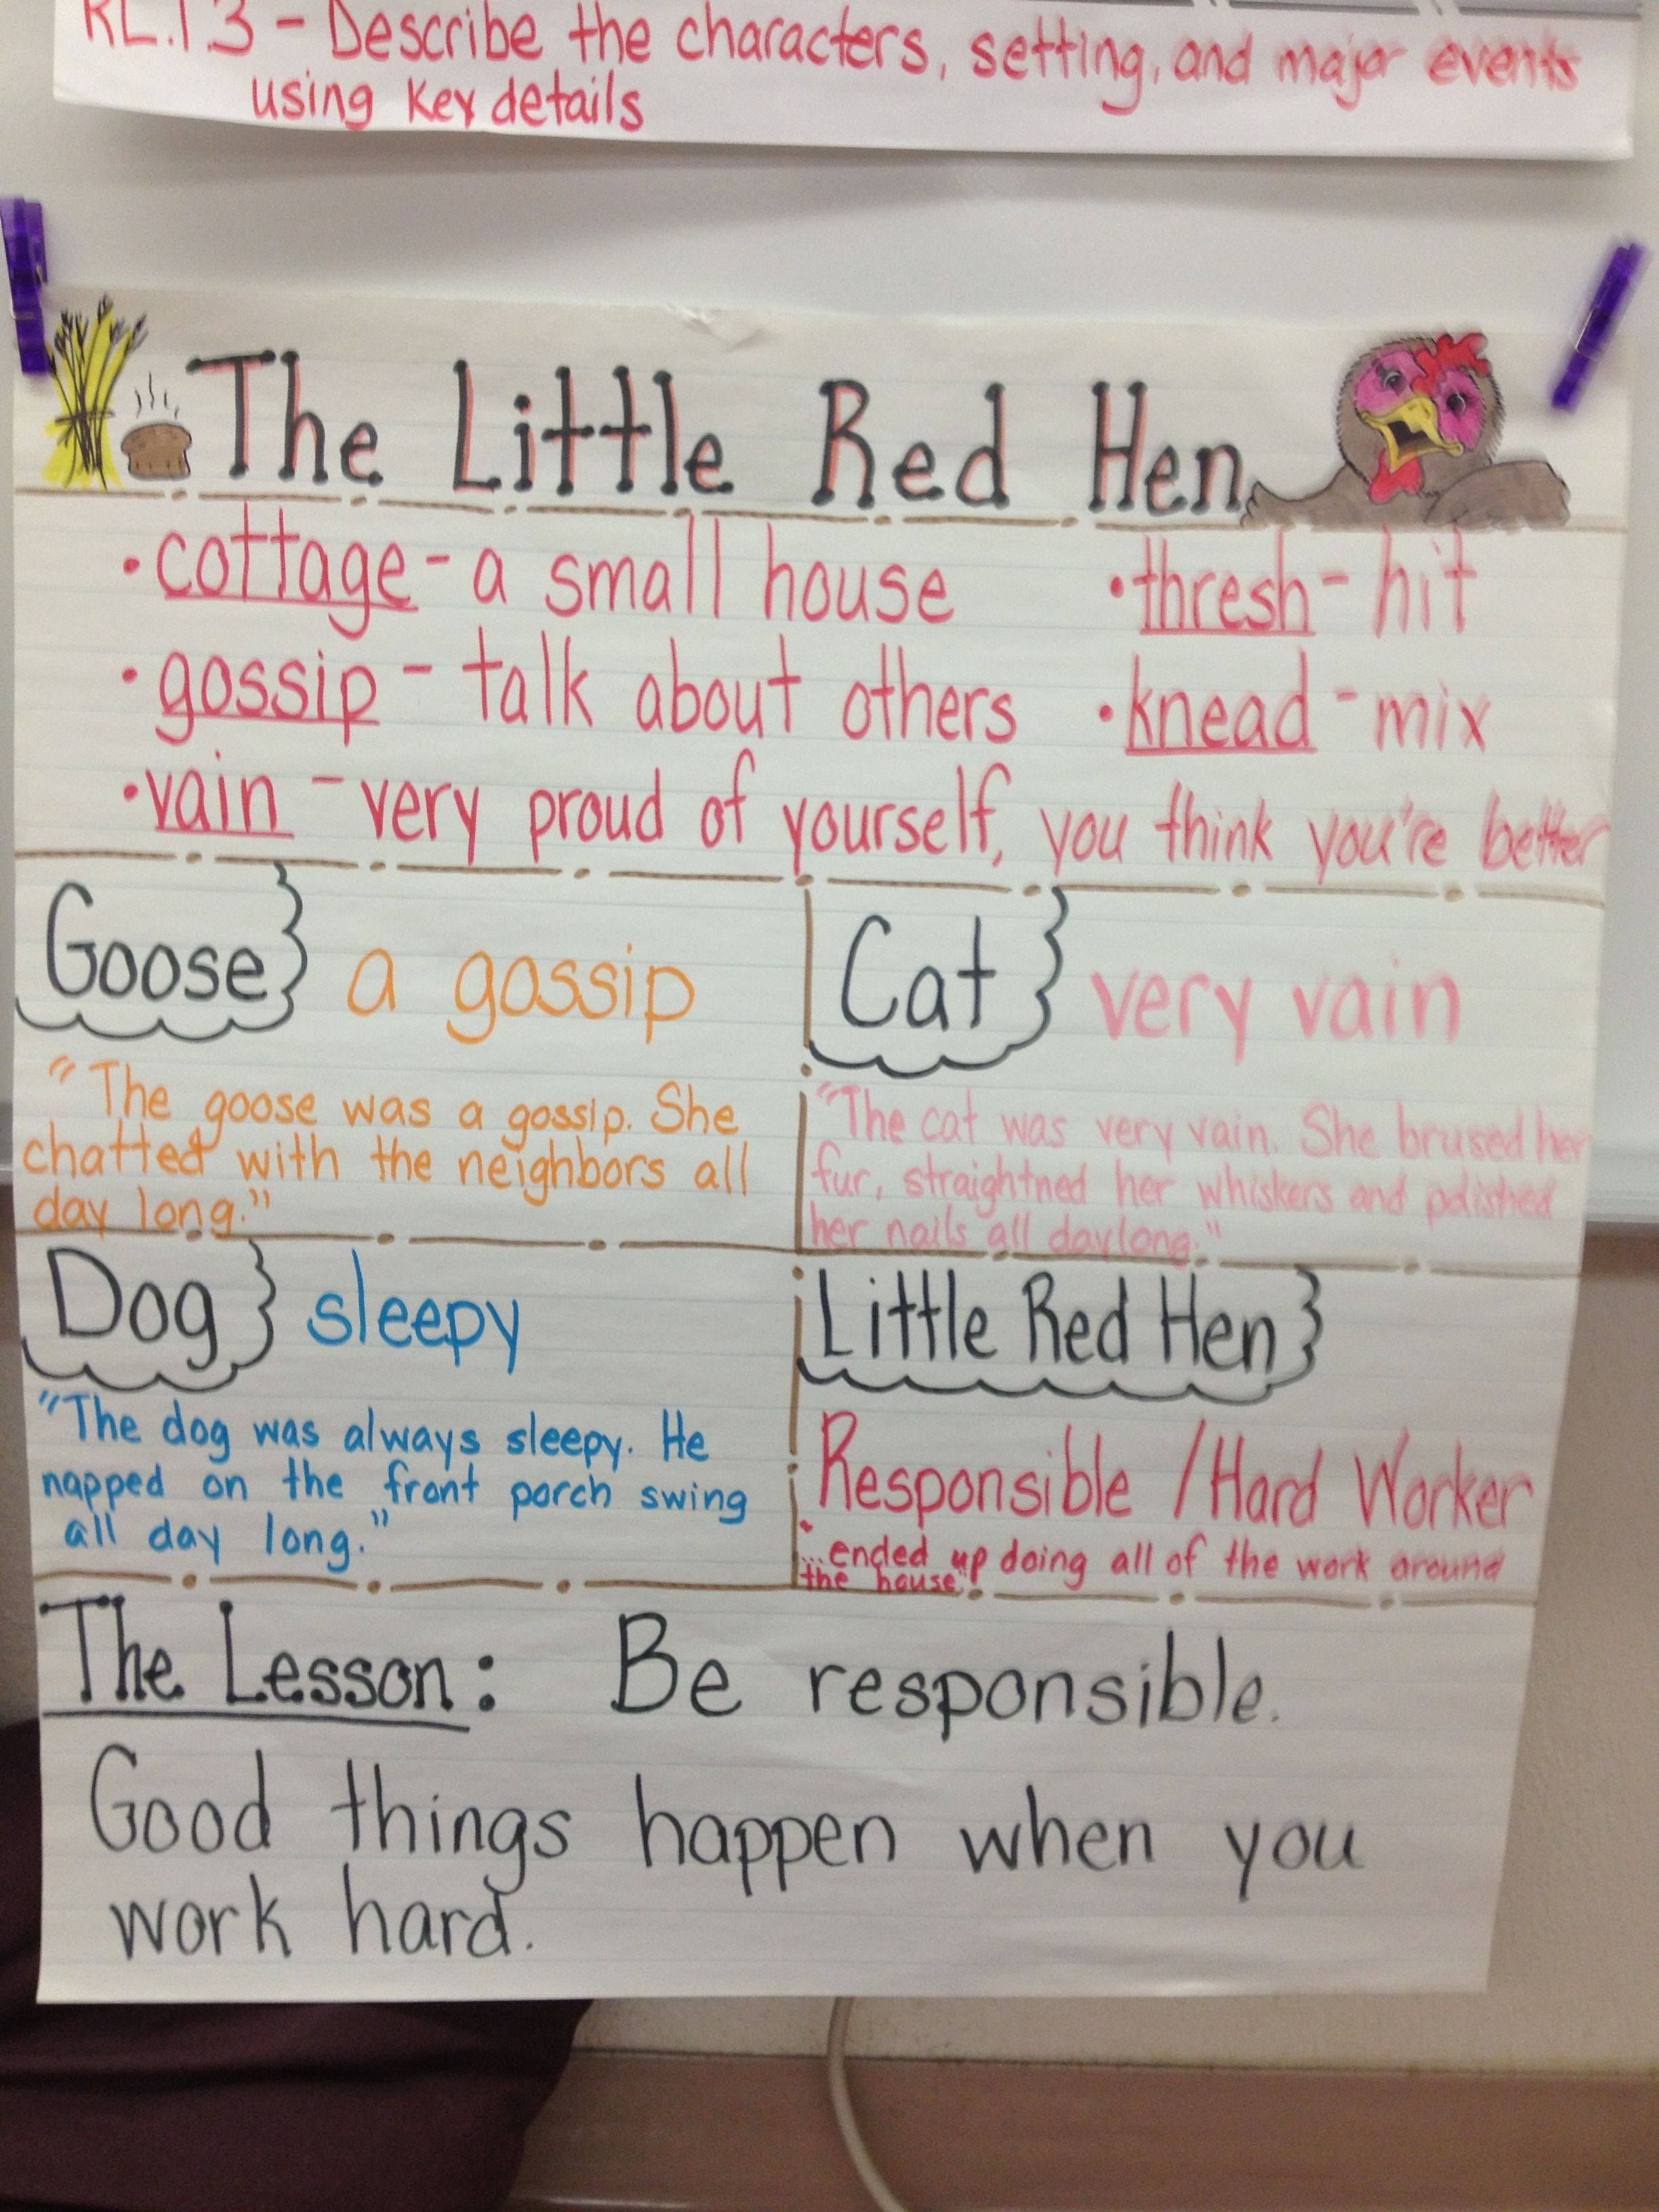 The Little Red Hen Rl 1 2